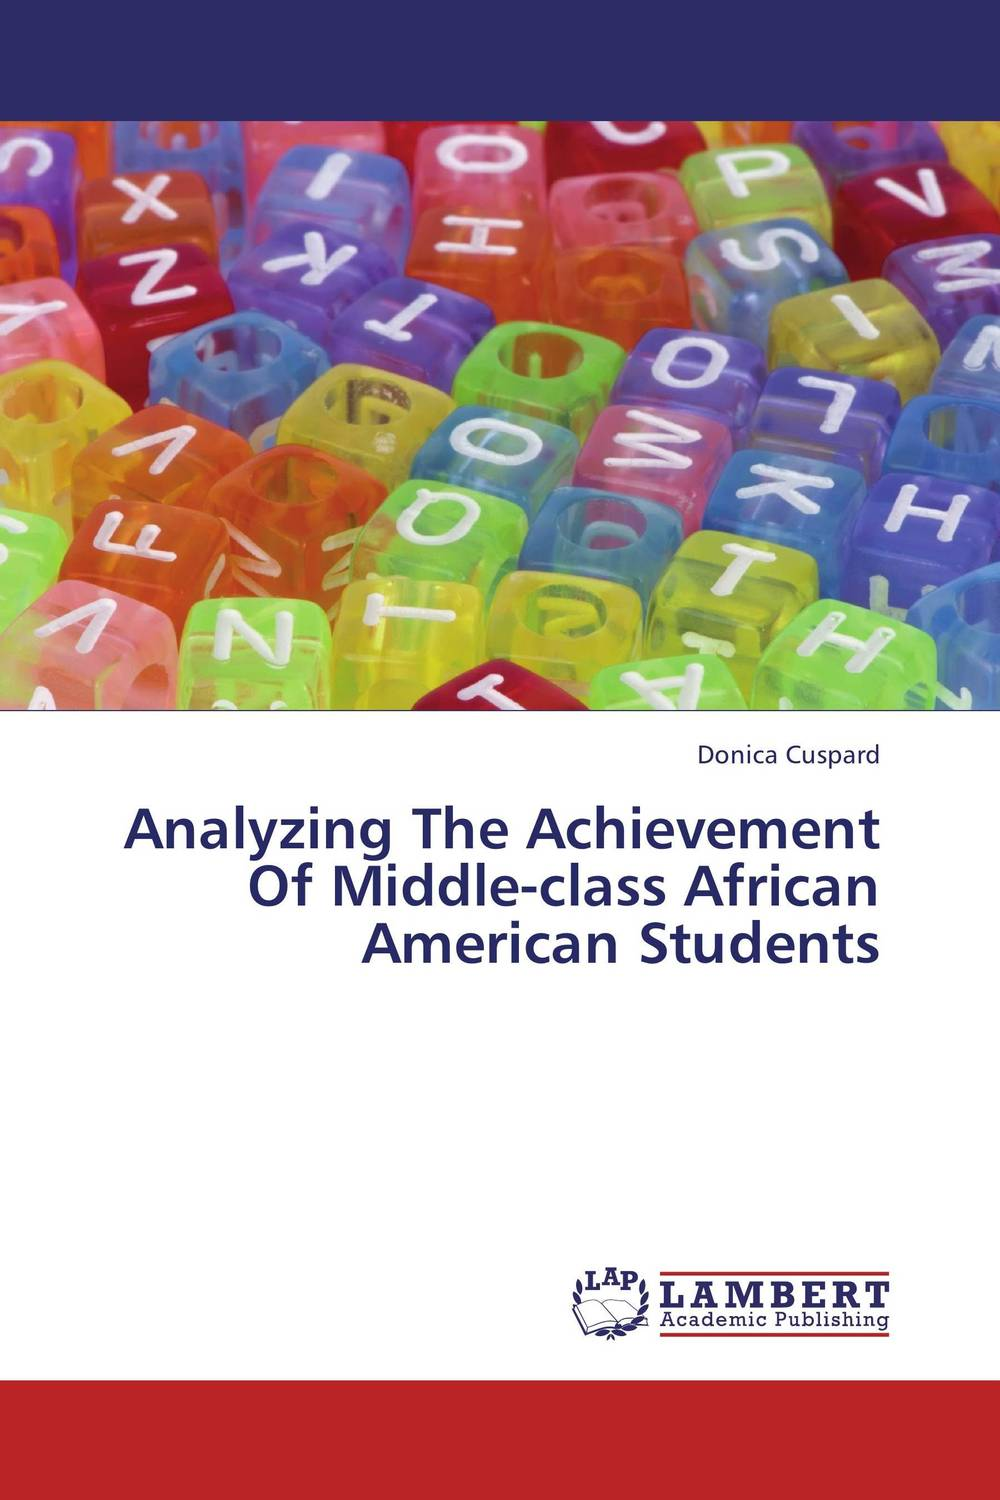 Analyzing The Achievement Of Middle-class African American Students magica italia 1 teachers guide class audio cd